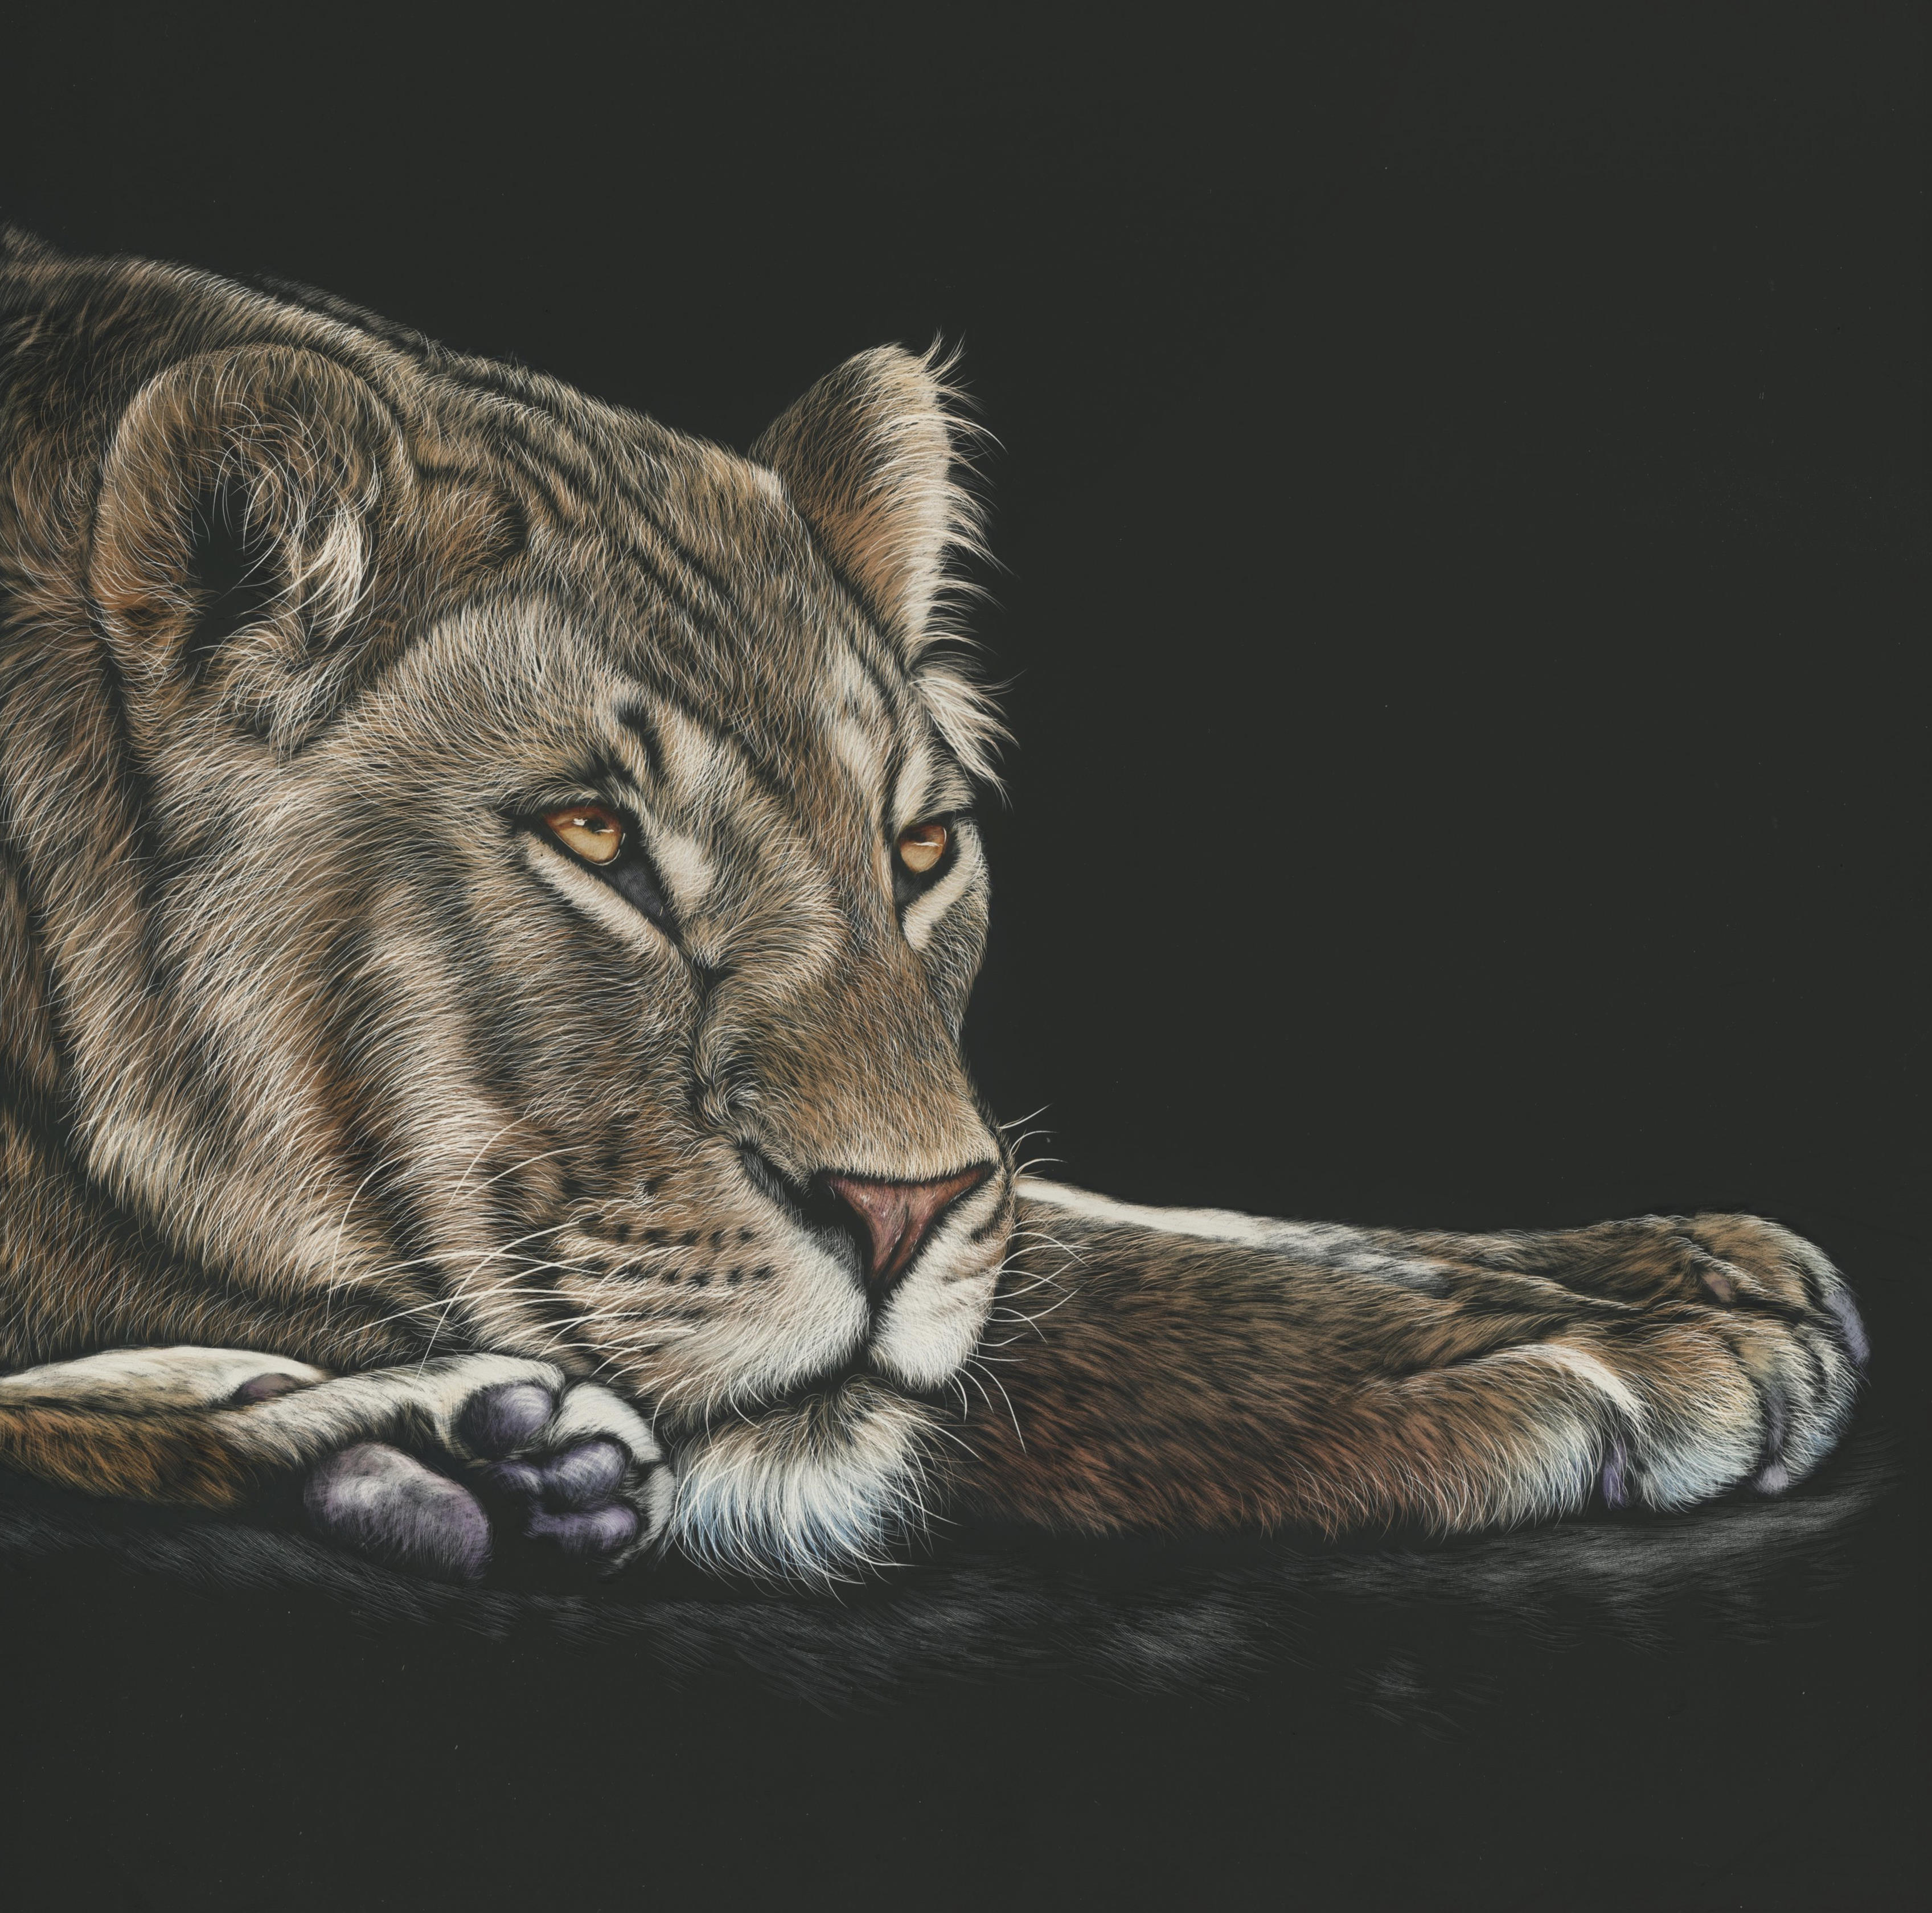 79102 download wallpaper Lioness, Big Cat, Sight, Opinion, Art, Picture, Drawing screensavers and pictures for free